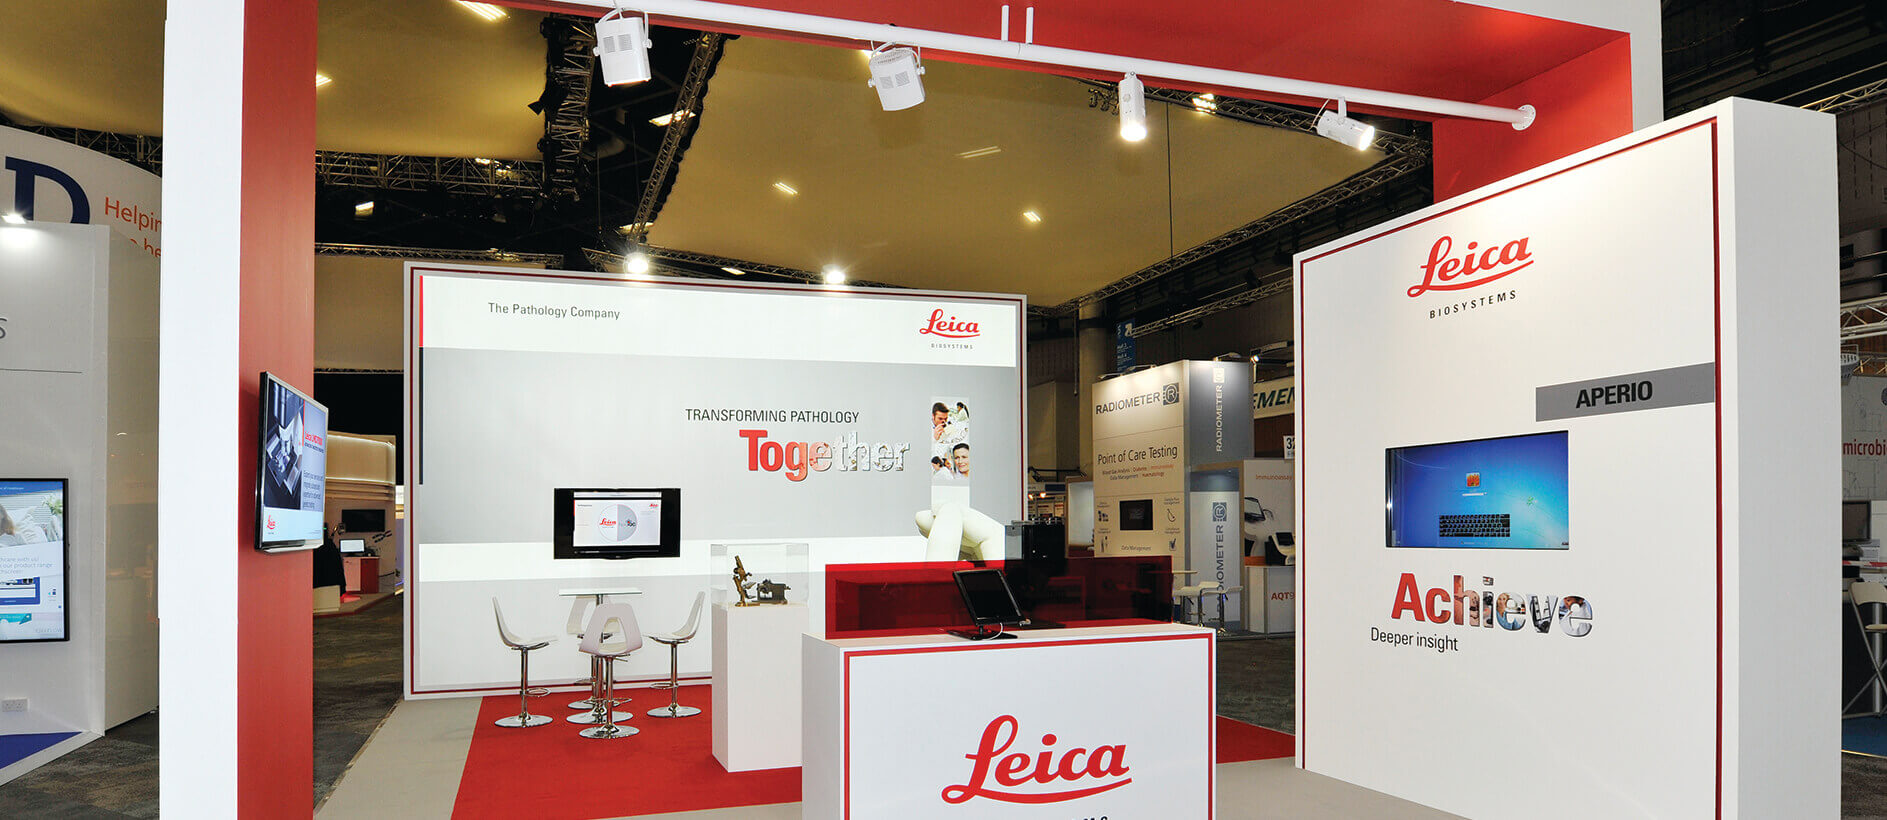 Bespoke exhibition stand for Leica by Exhibit 3Sixty